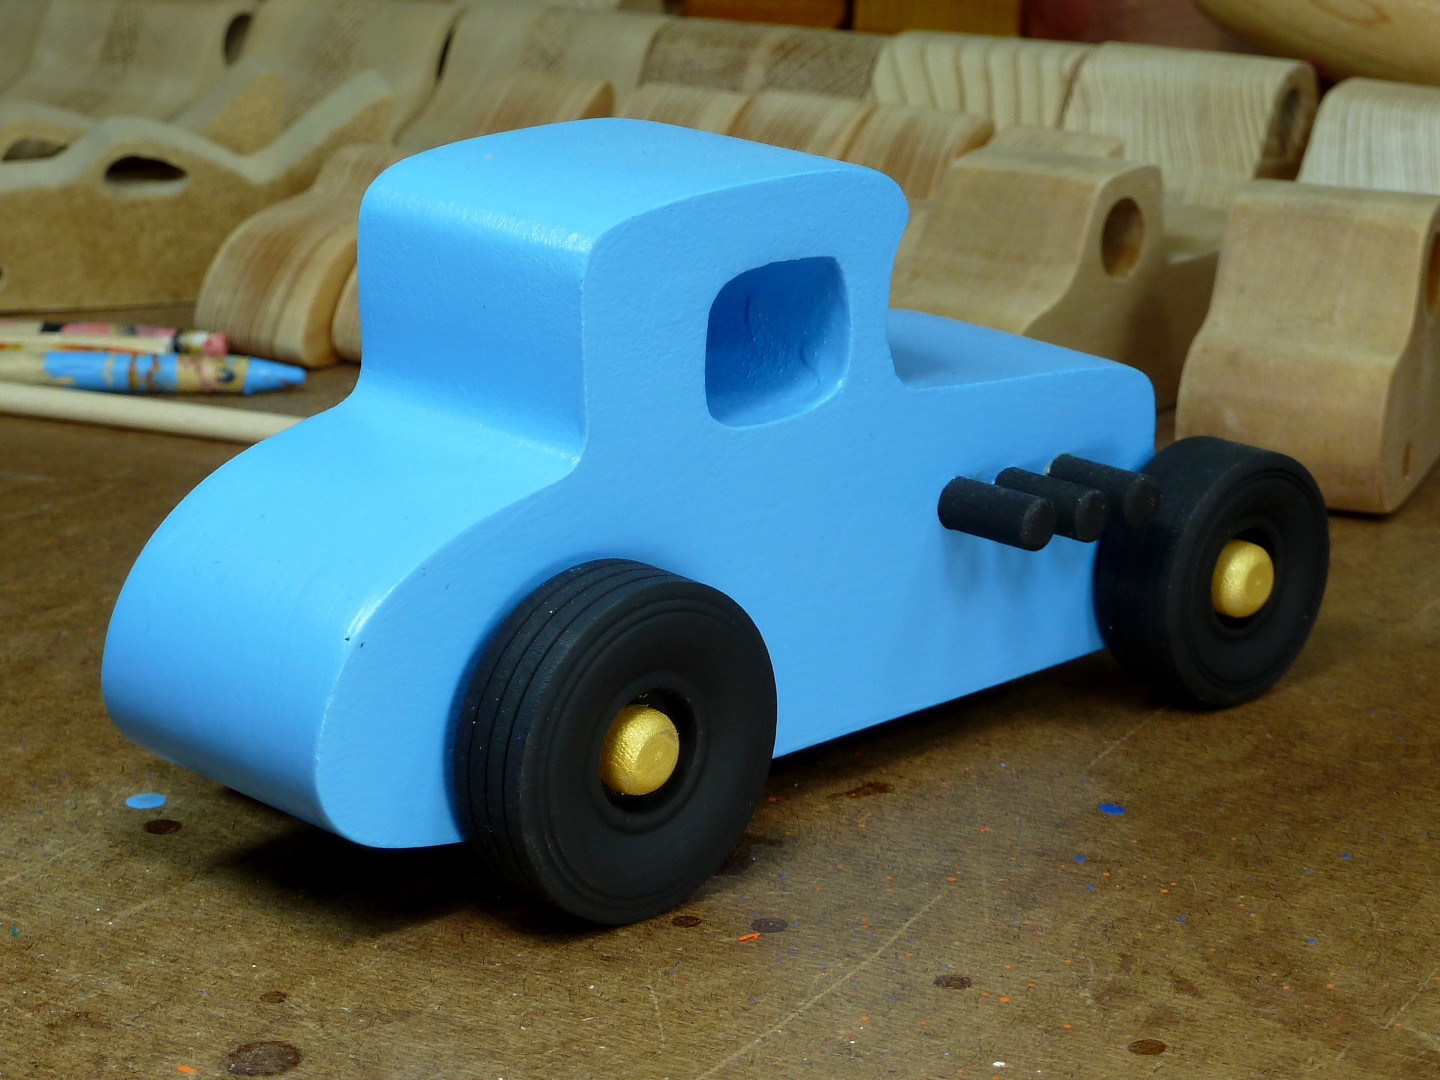 20170522-192812 Wooden Toy Car - Hot Rod Freaky Ford - 27 T Coupe - MDF - Blue - Black - Gold 06.jpg